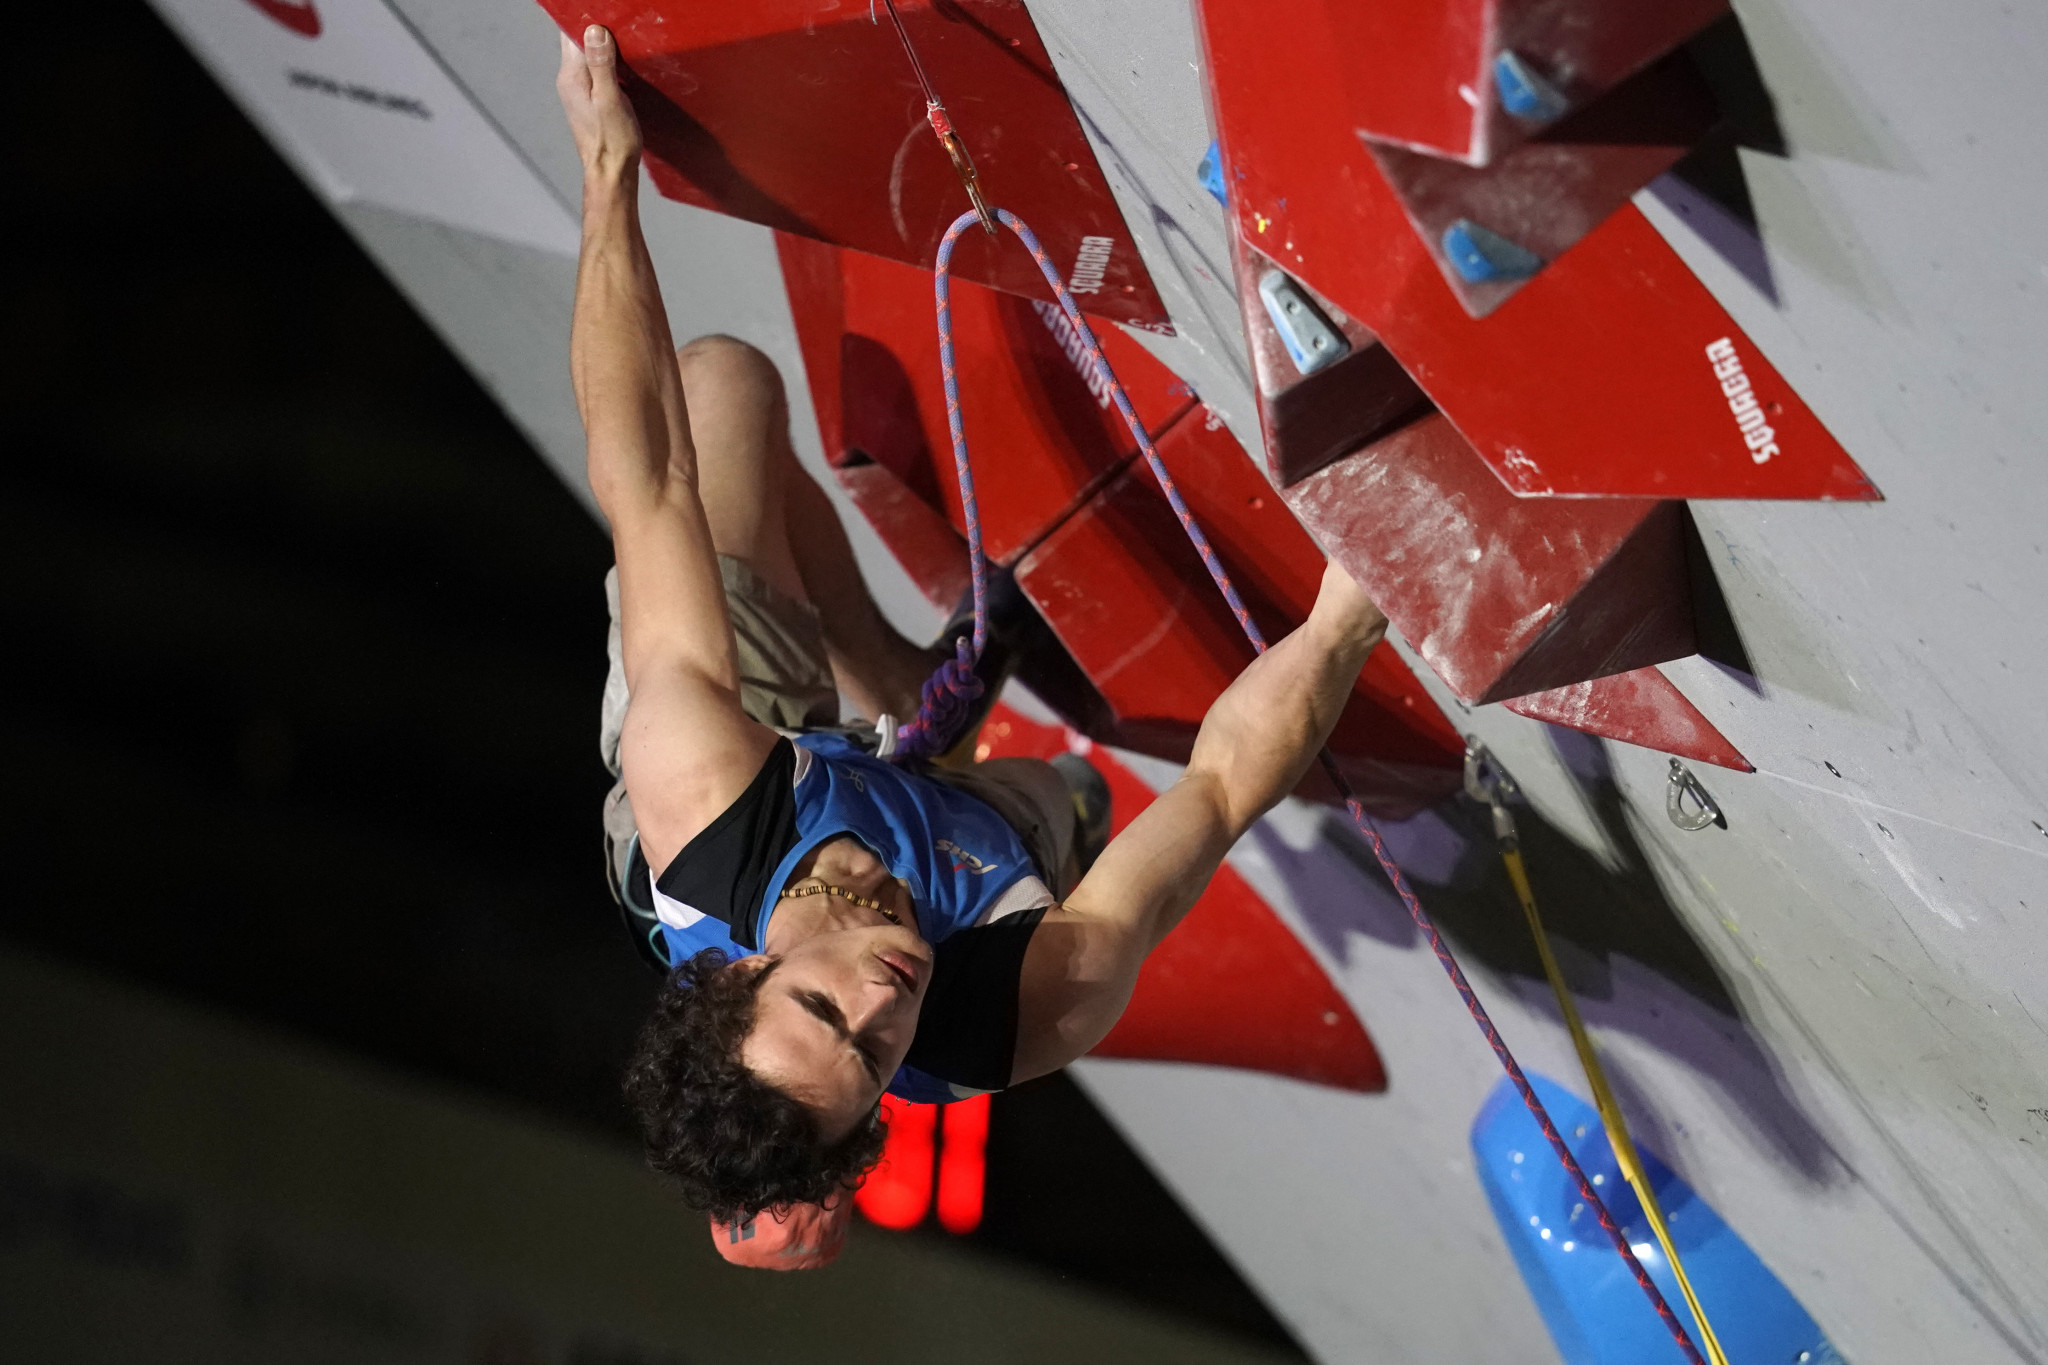 Adam Ondra won the men's lead event at the IFSC Climbing World Cup in Xiamen ©Getty Images